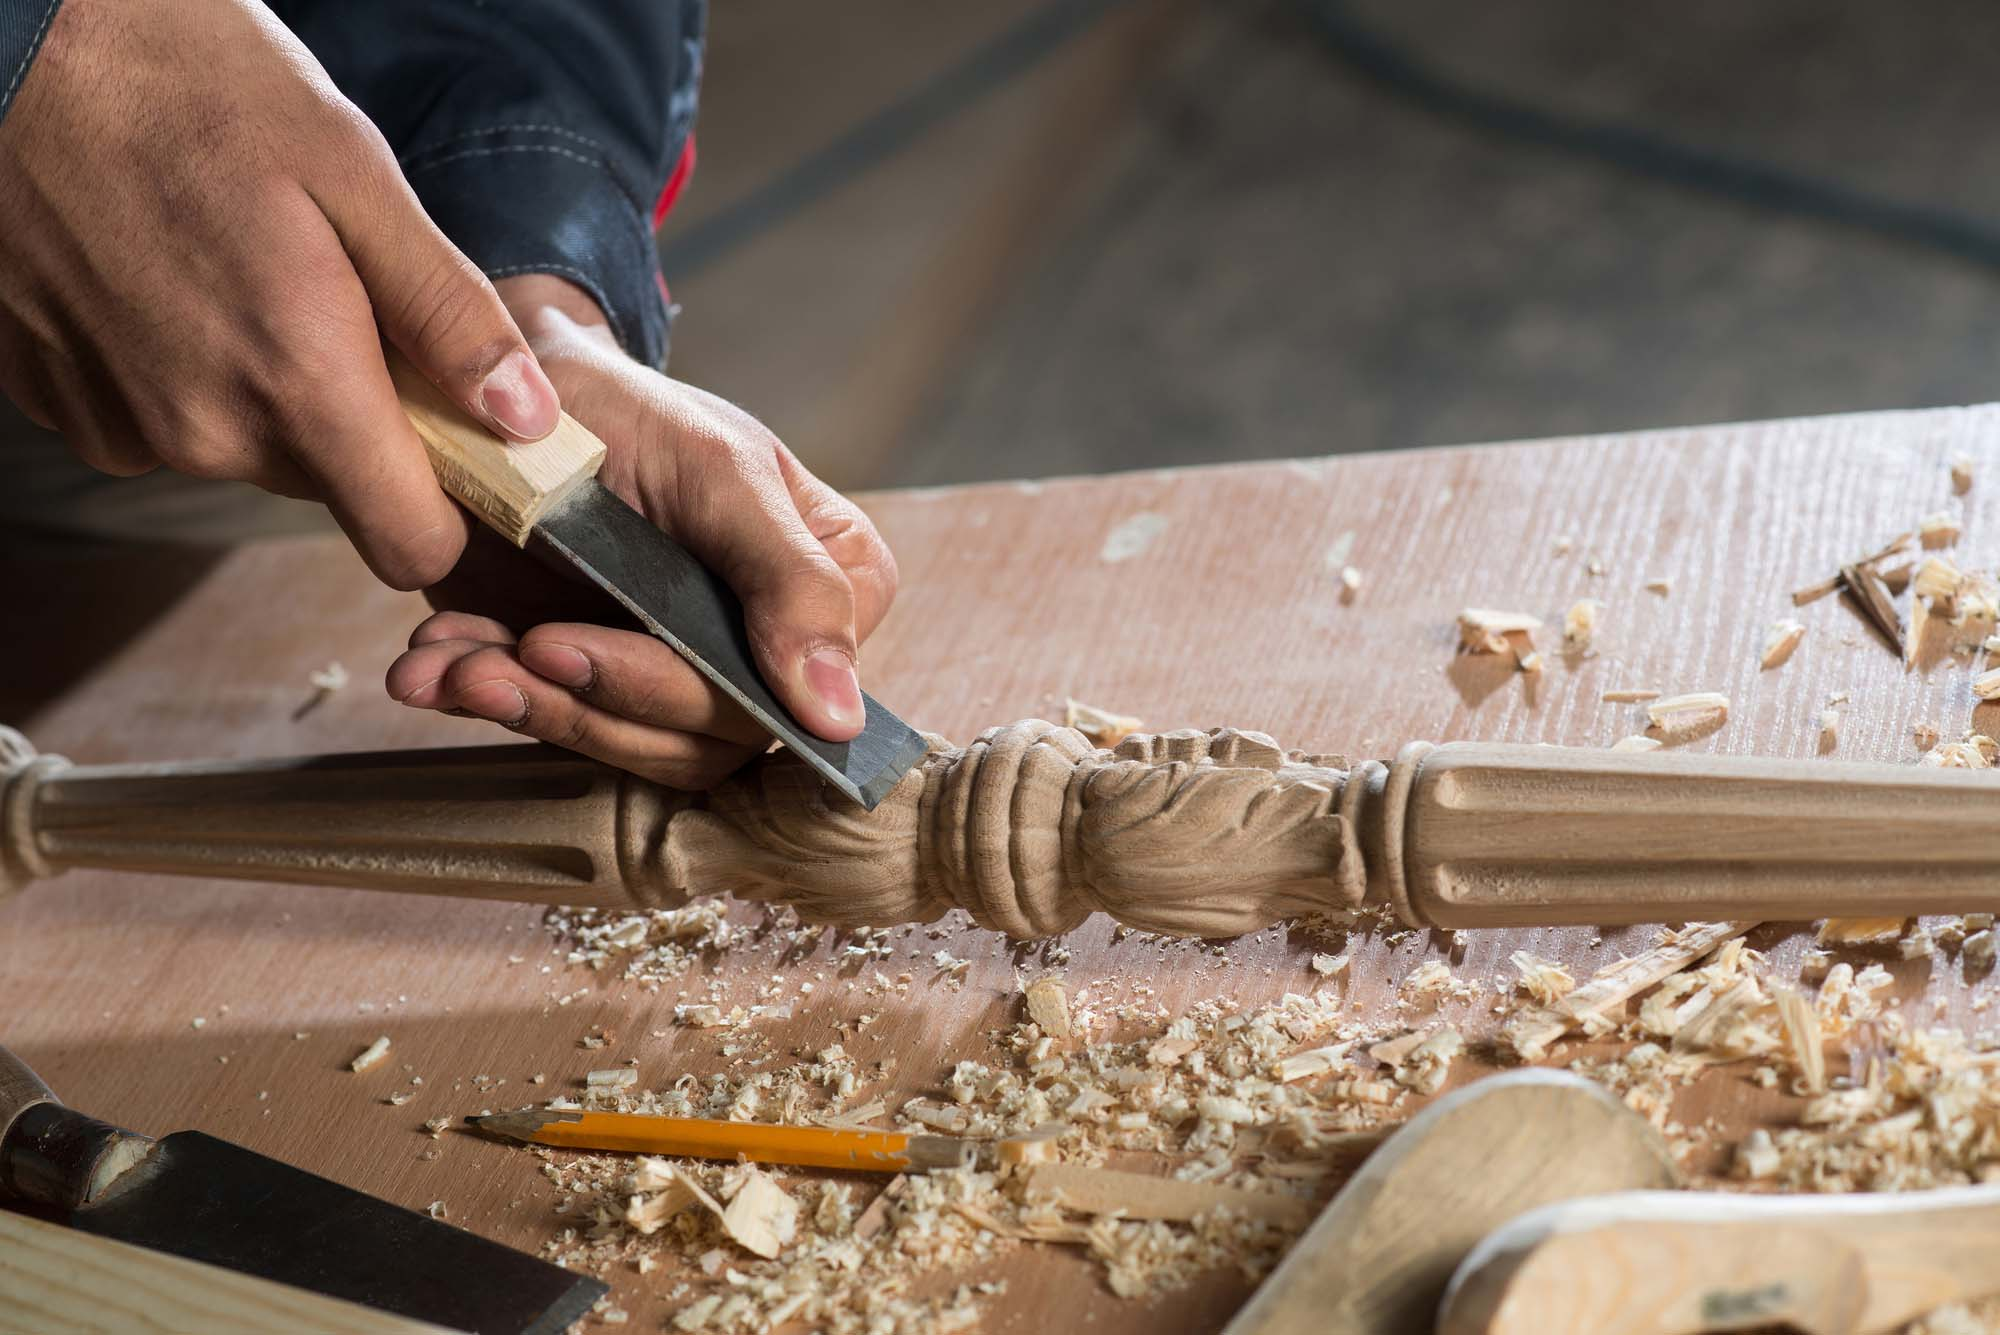 Artistic Inspiration in Carpentry